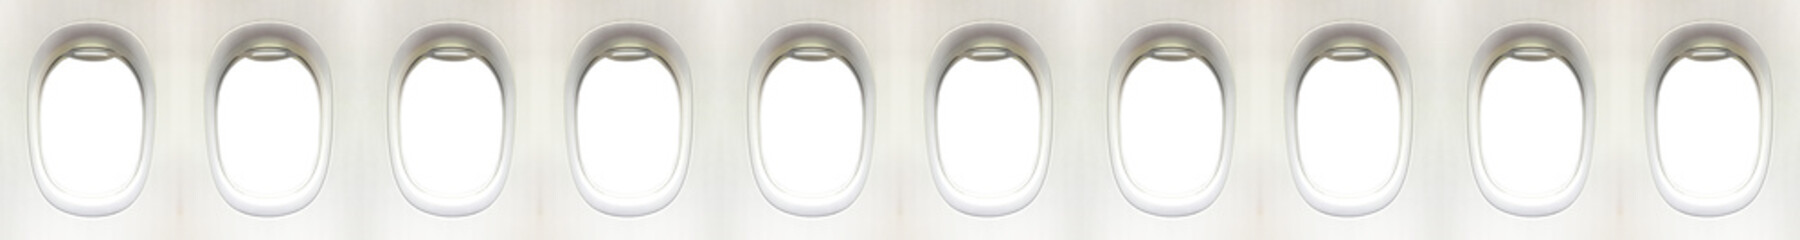 Airplane window and space for your design, clipping path